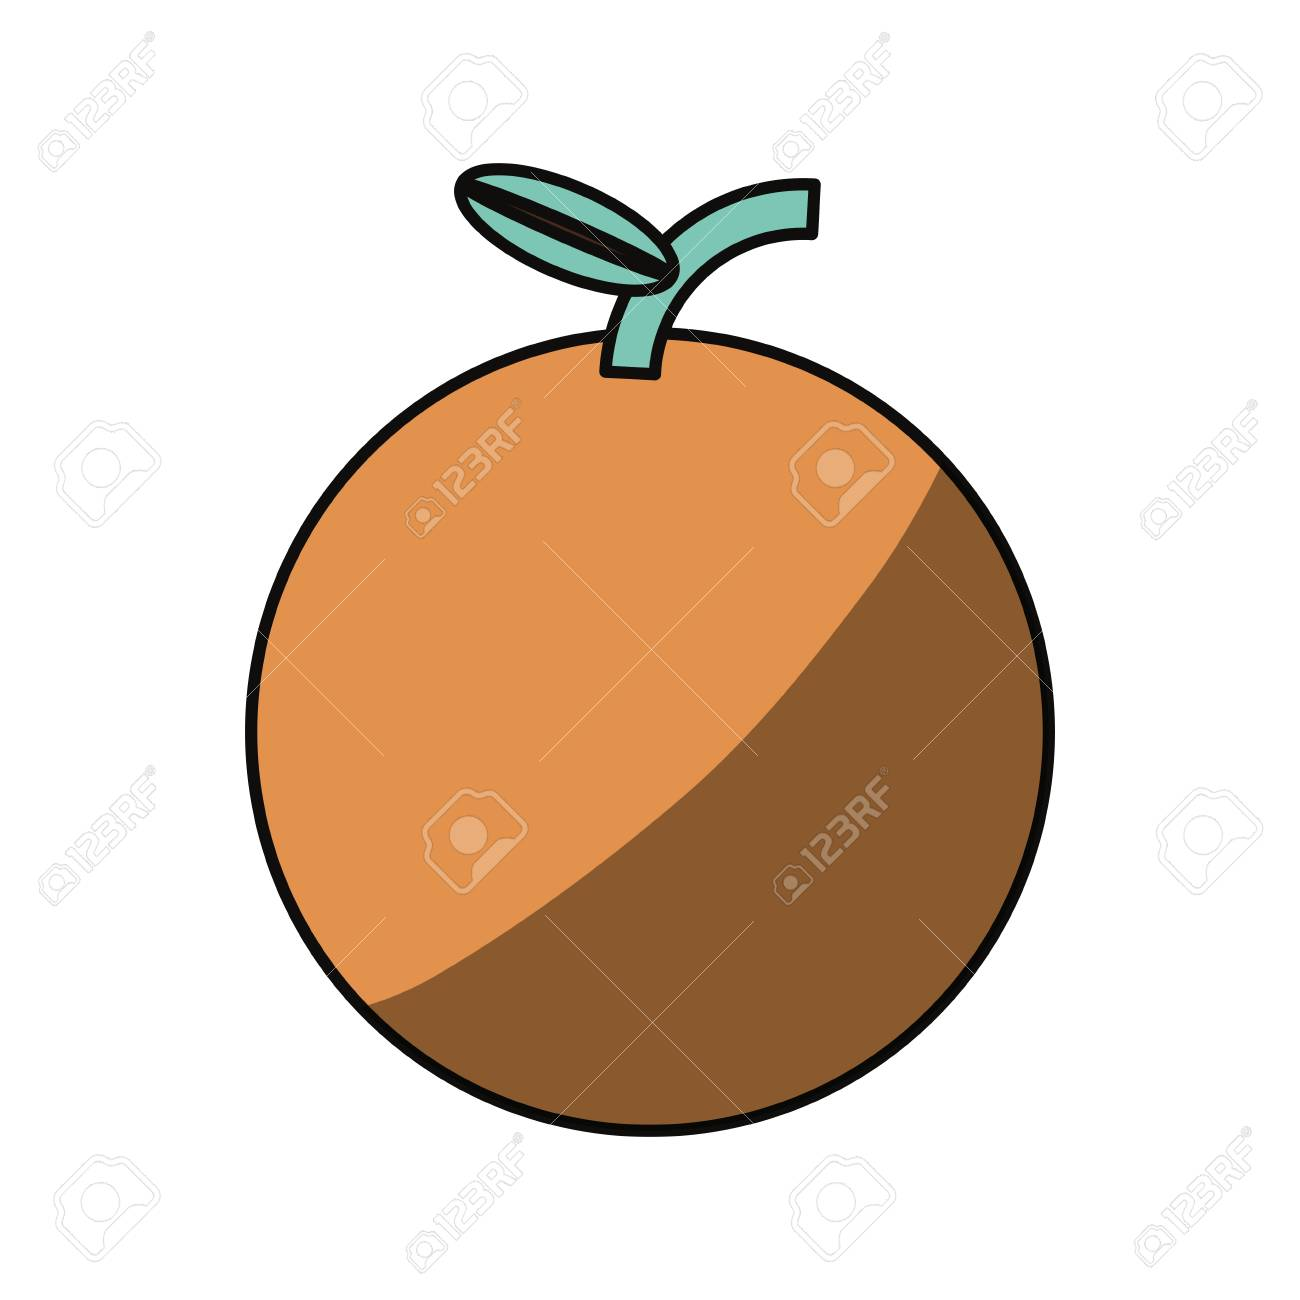 Orange Fruit Graphic Images